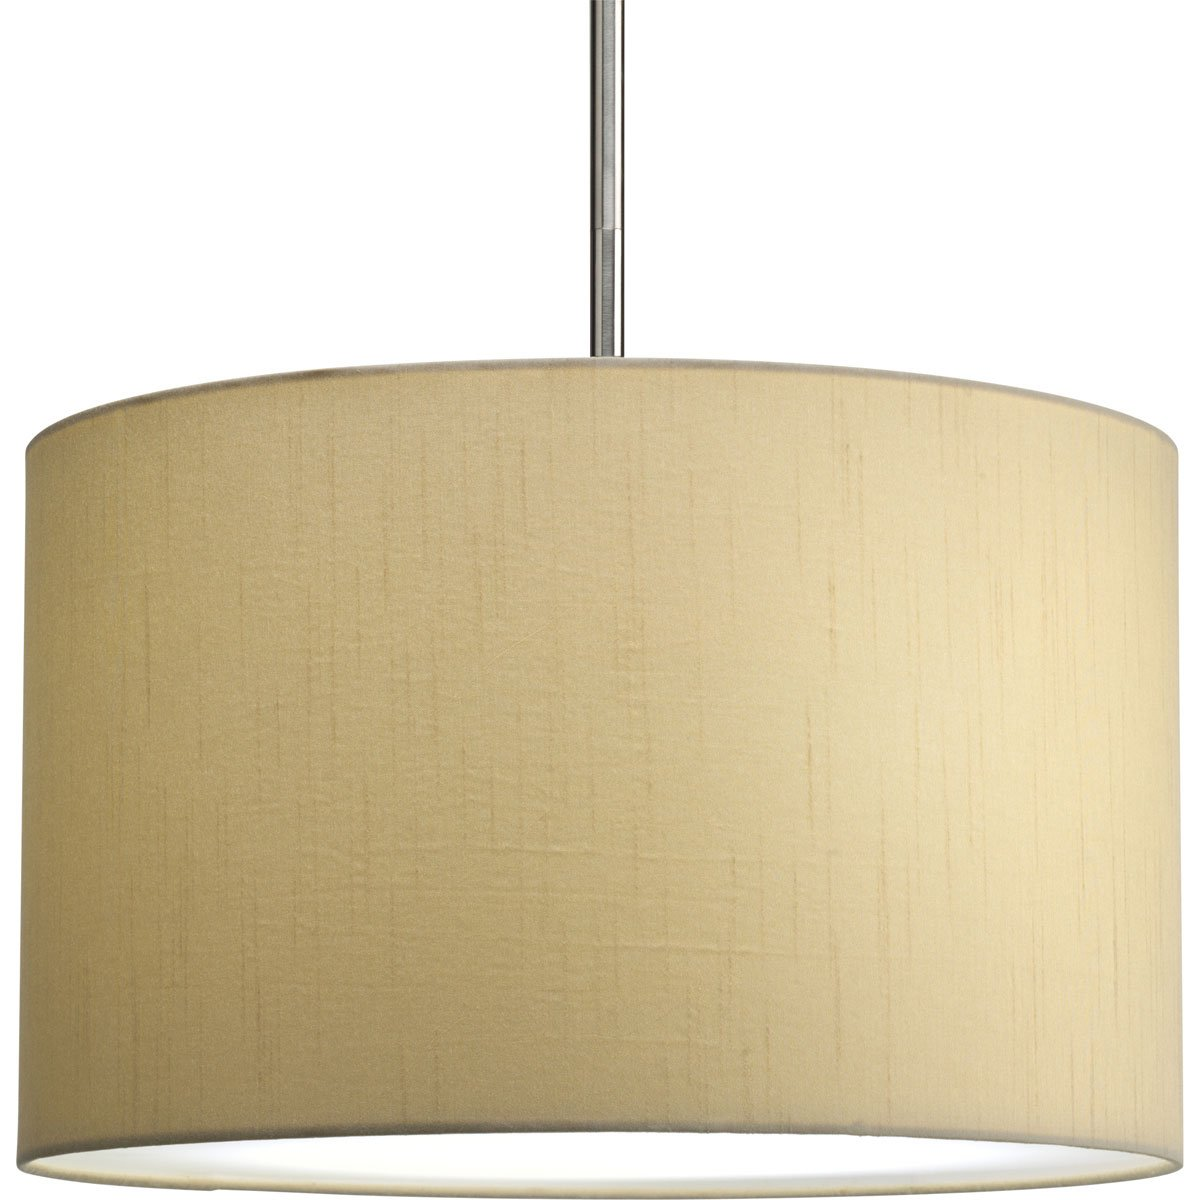 drum shade pendant lighting. progress lighting p882301 16inch drum shade beige silken fabric with full modular pendant requires 1light stem p5198 or 3light p5199 to make